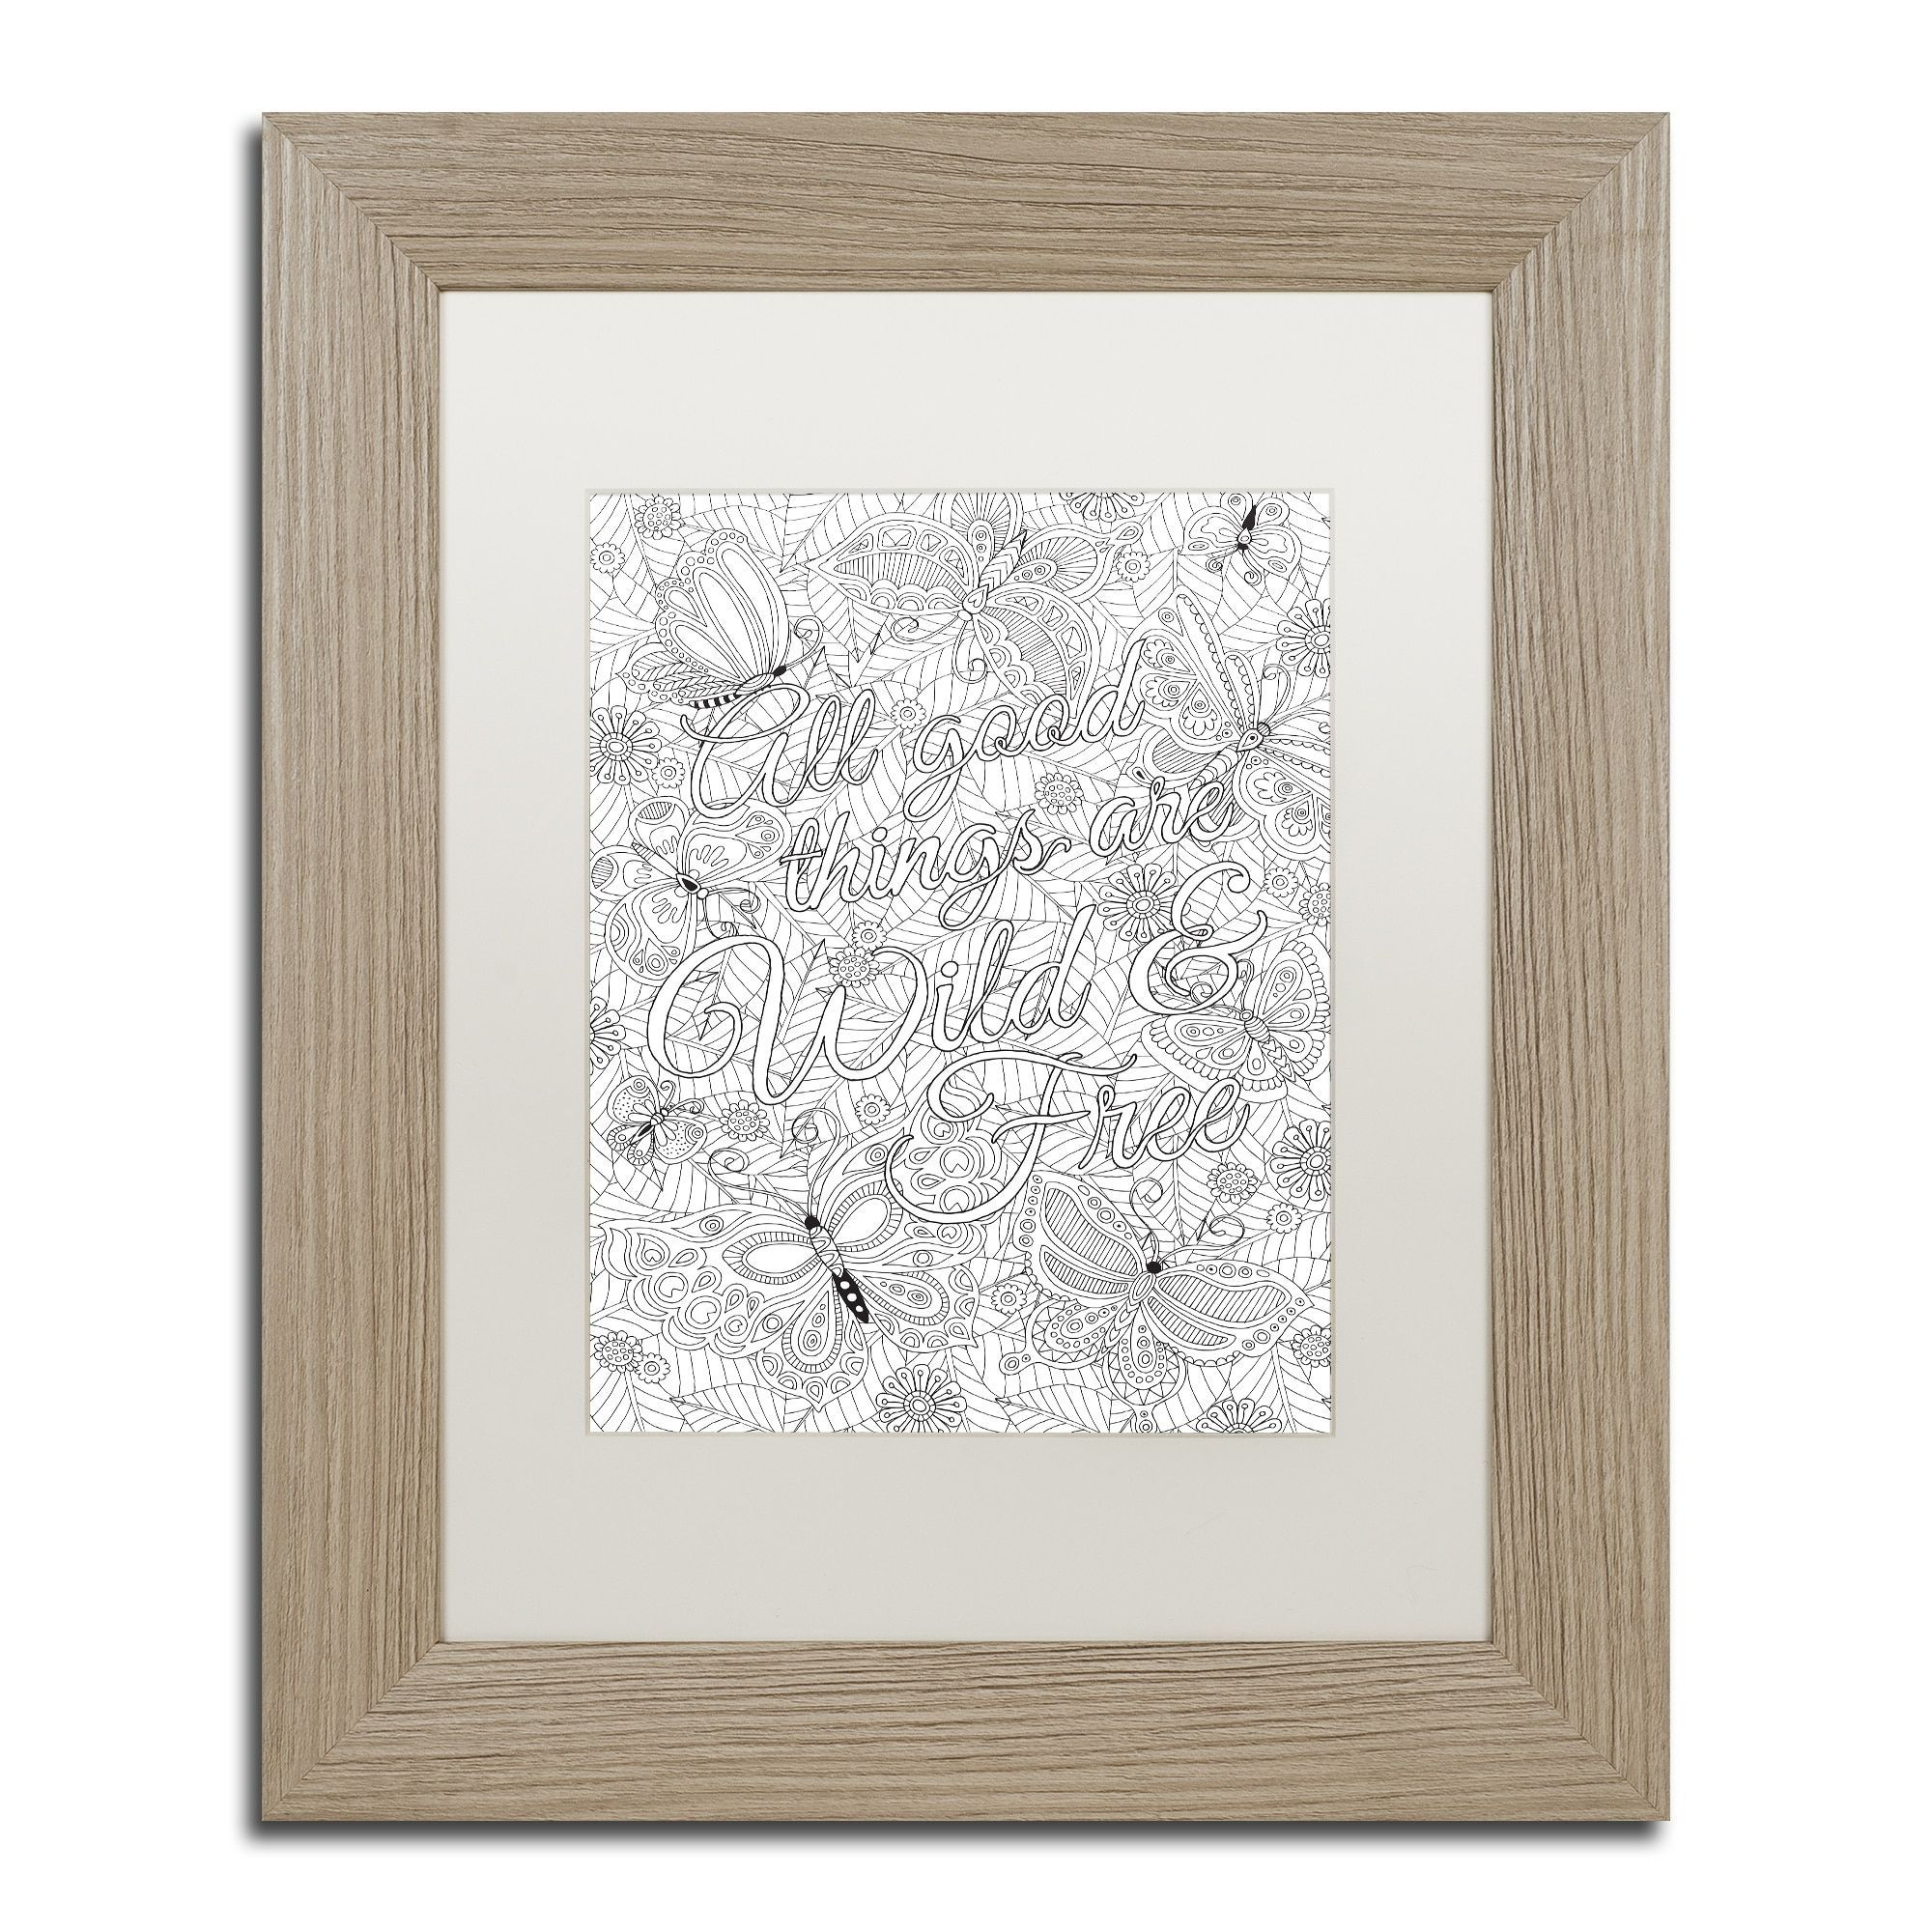 Hello Angel 'All Good Things are Wild and Free' Matted Framed Art